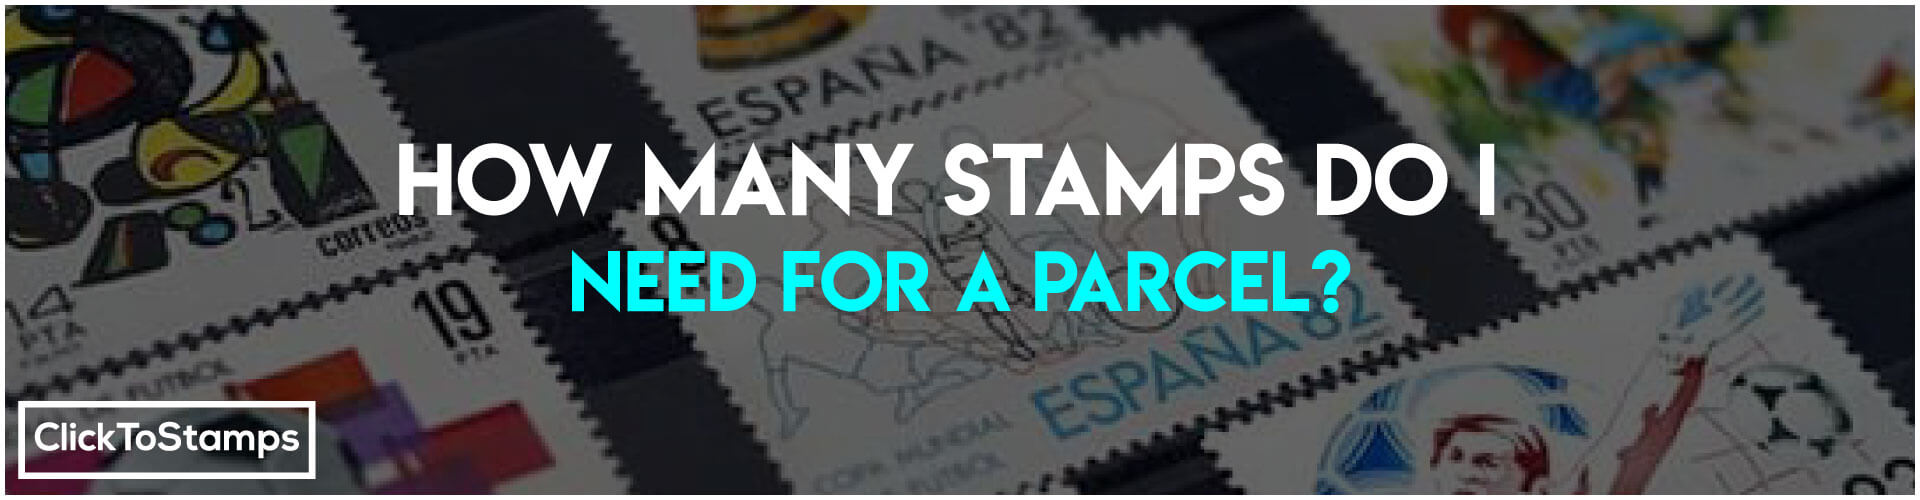 How Many Stamps Do I Need For A Parcel?